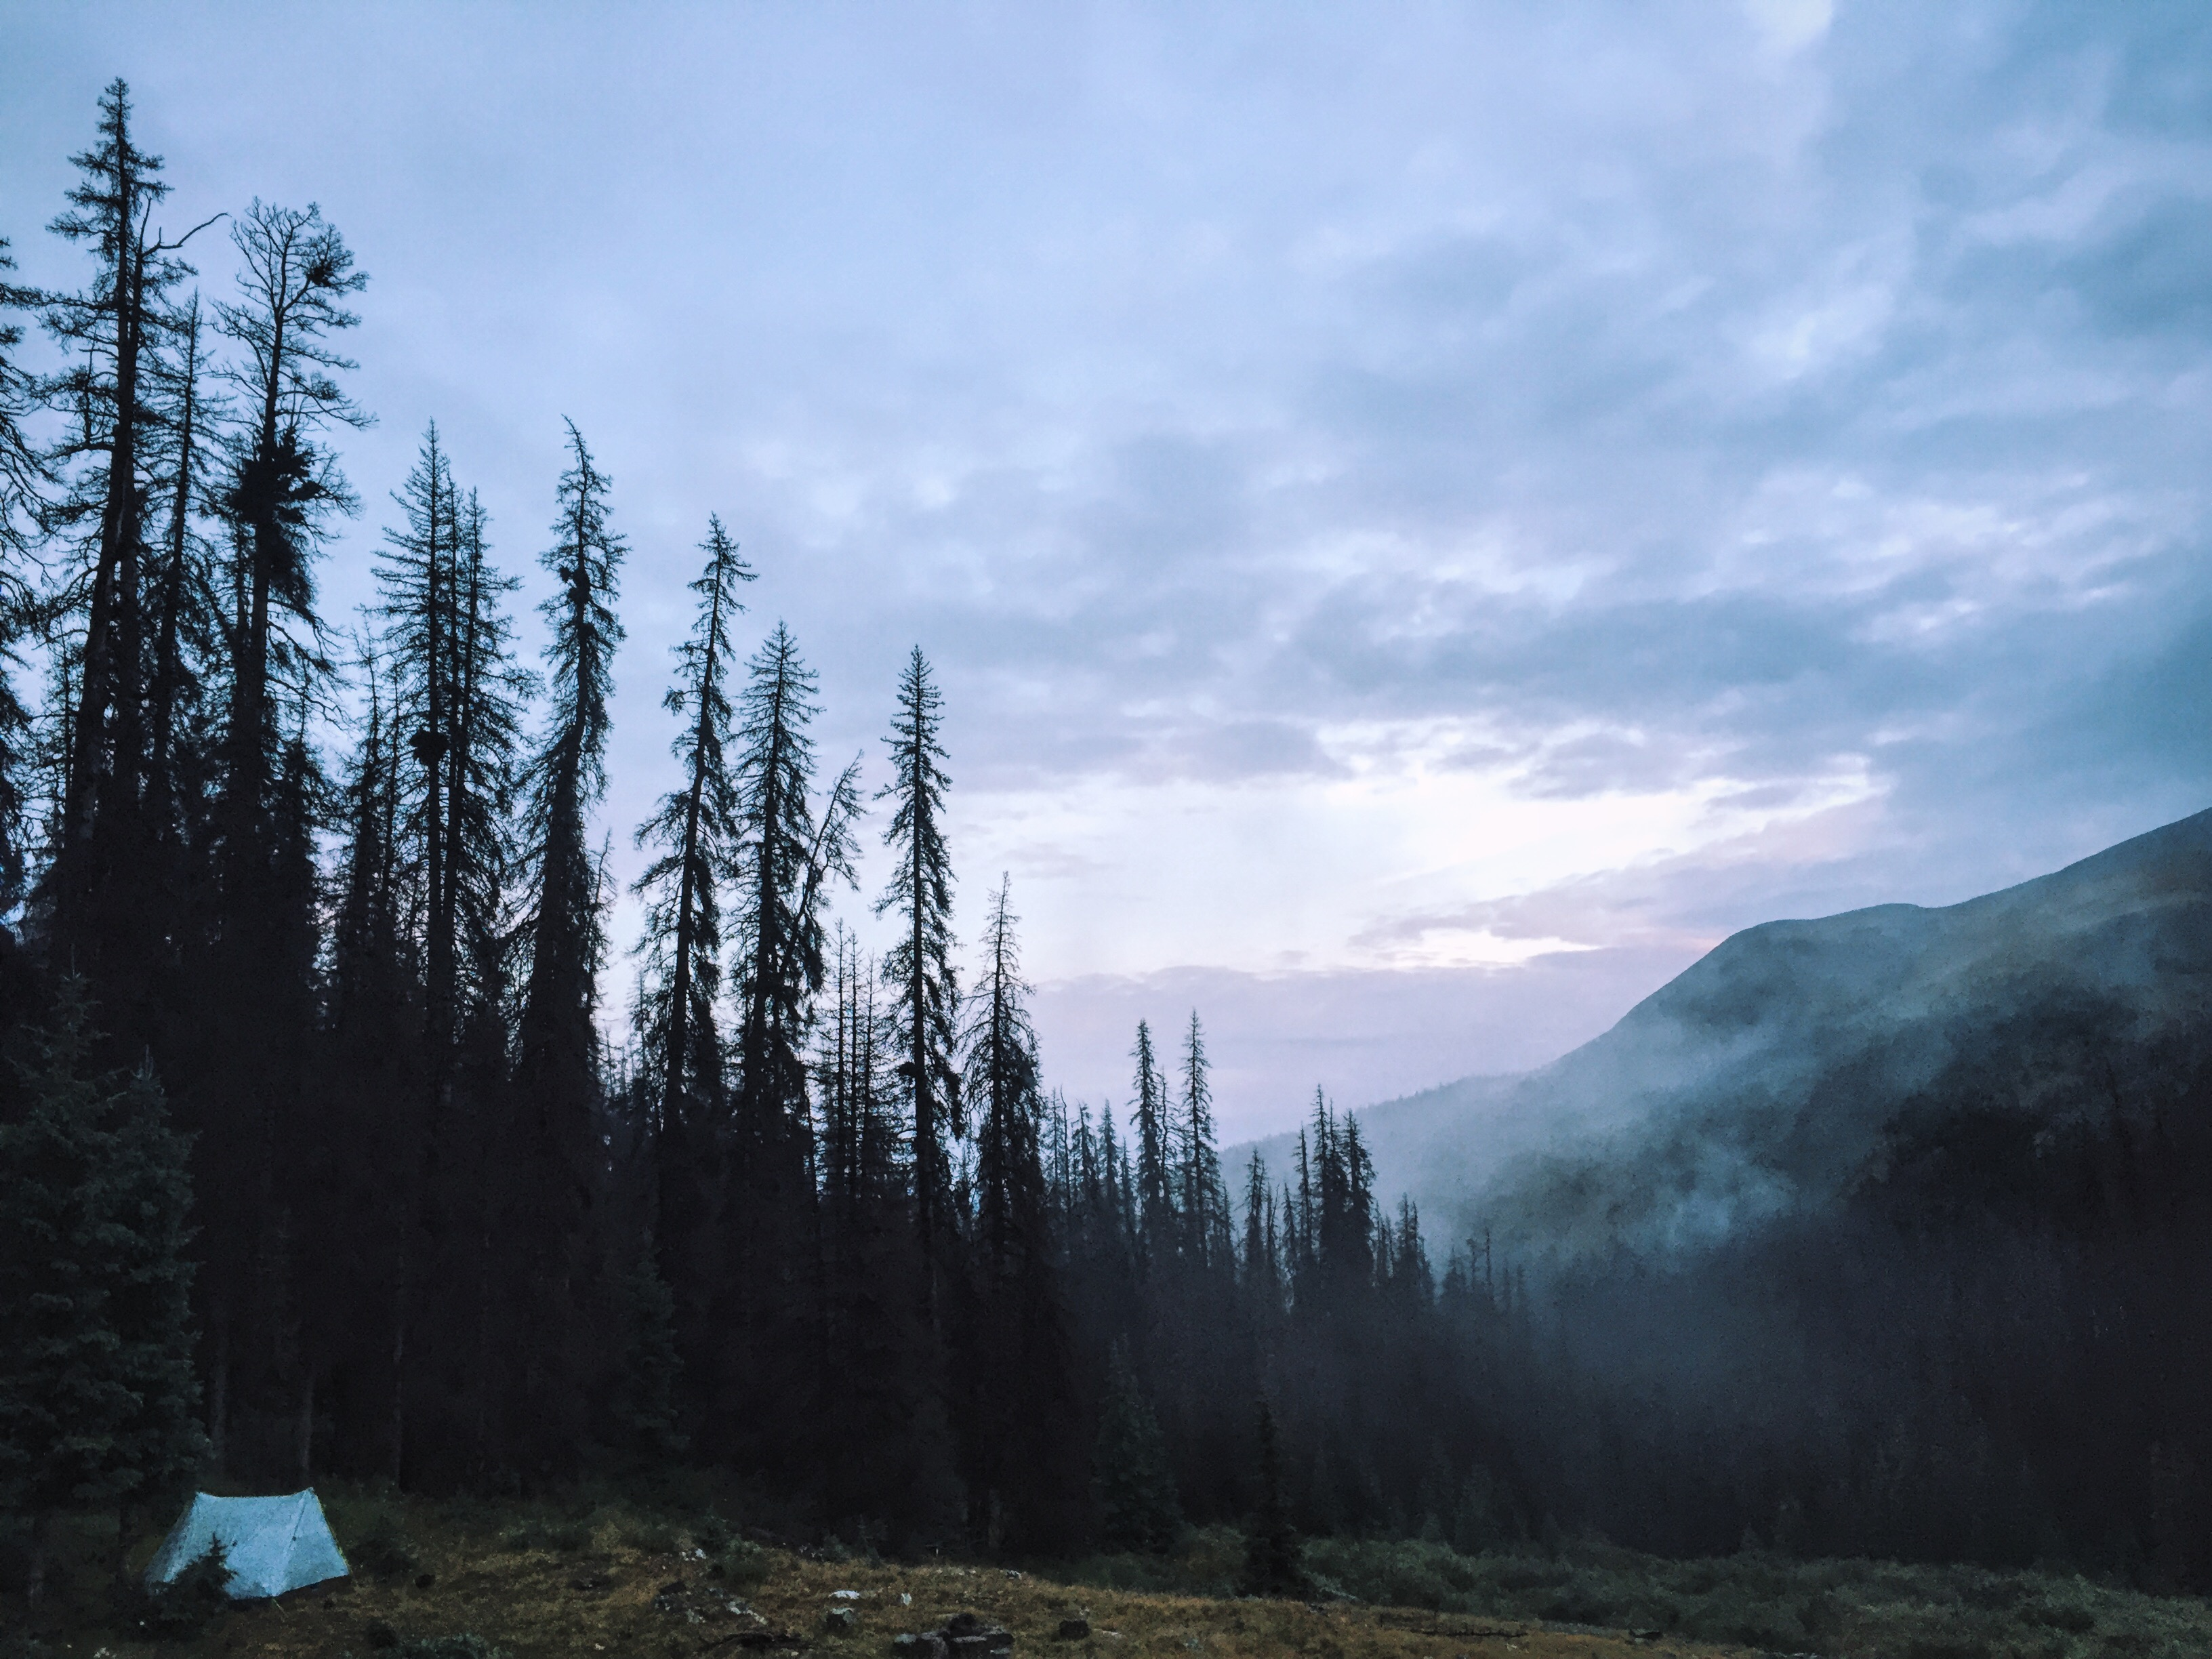 Tent-camping-in-the-mountains-on-foggy-morning